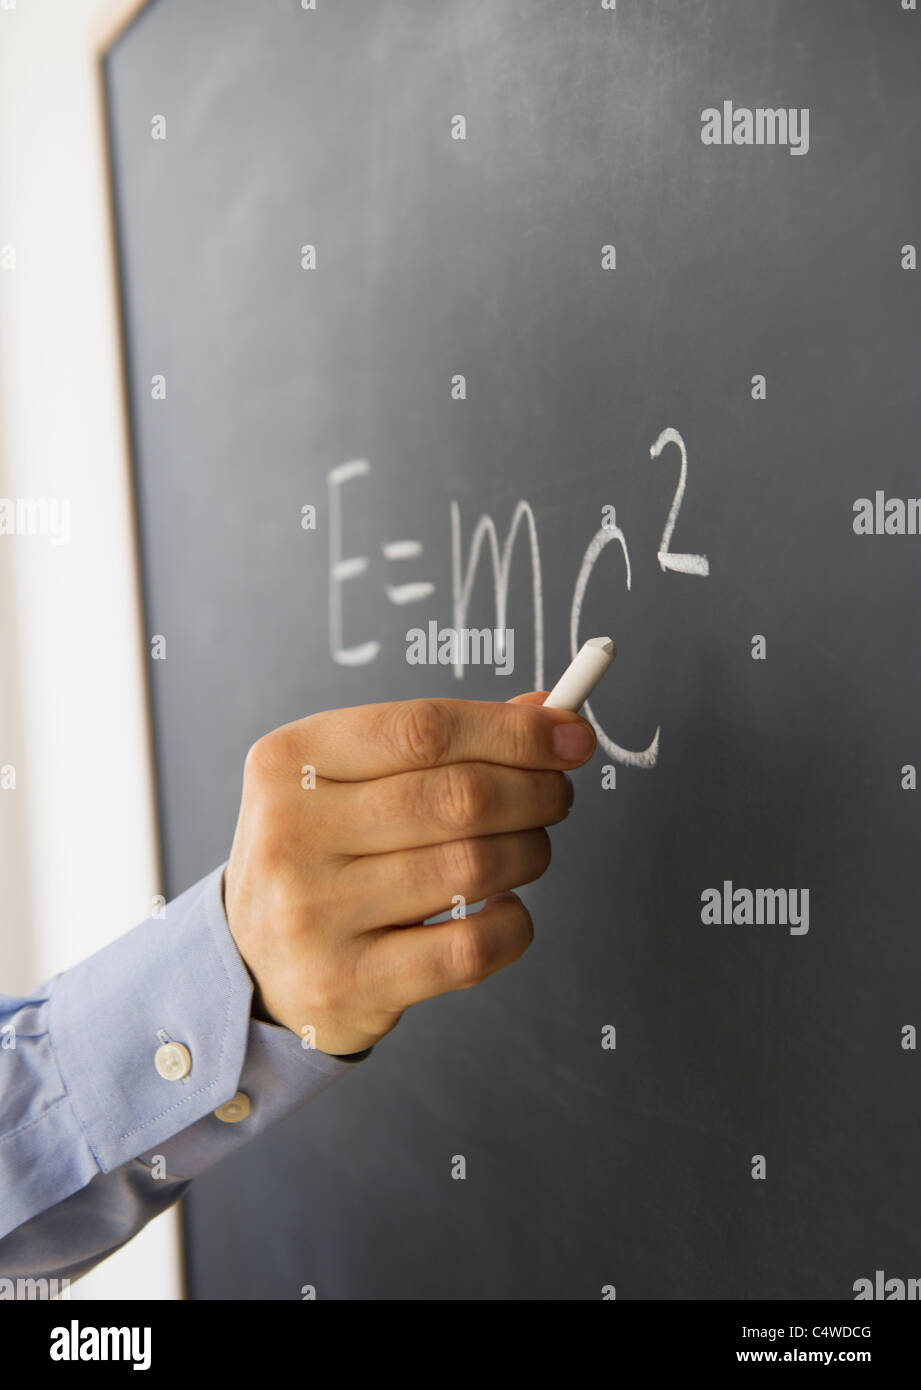 Close-up of man's hand writing theory of relativity formula on blackboard - Stock Image